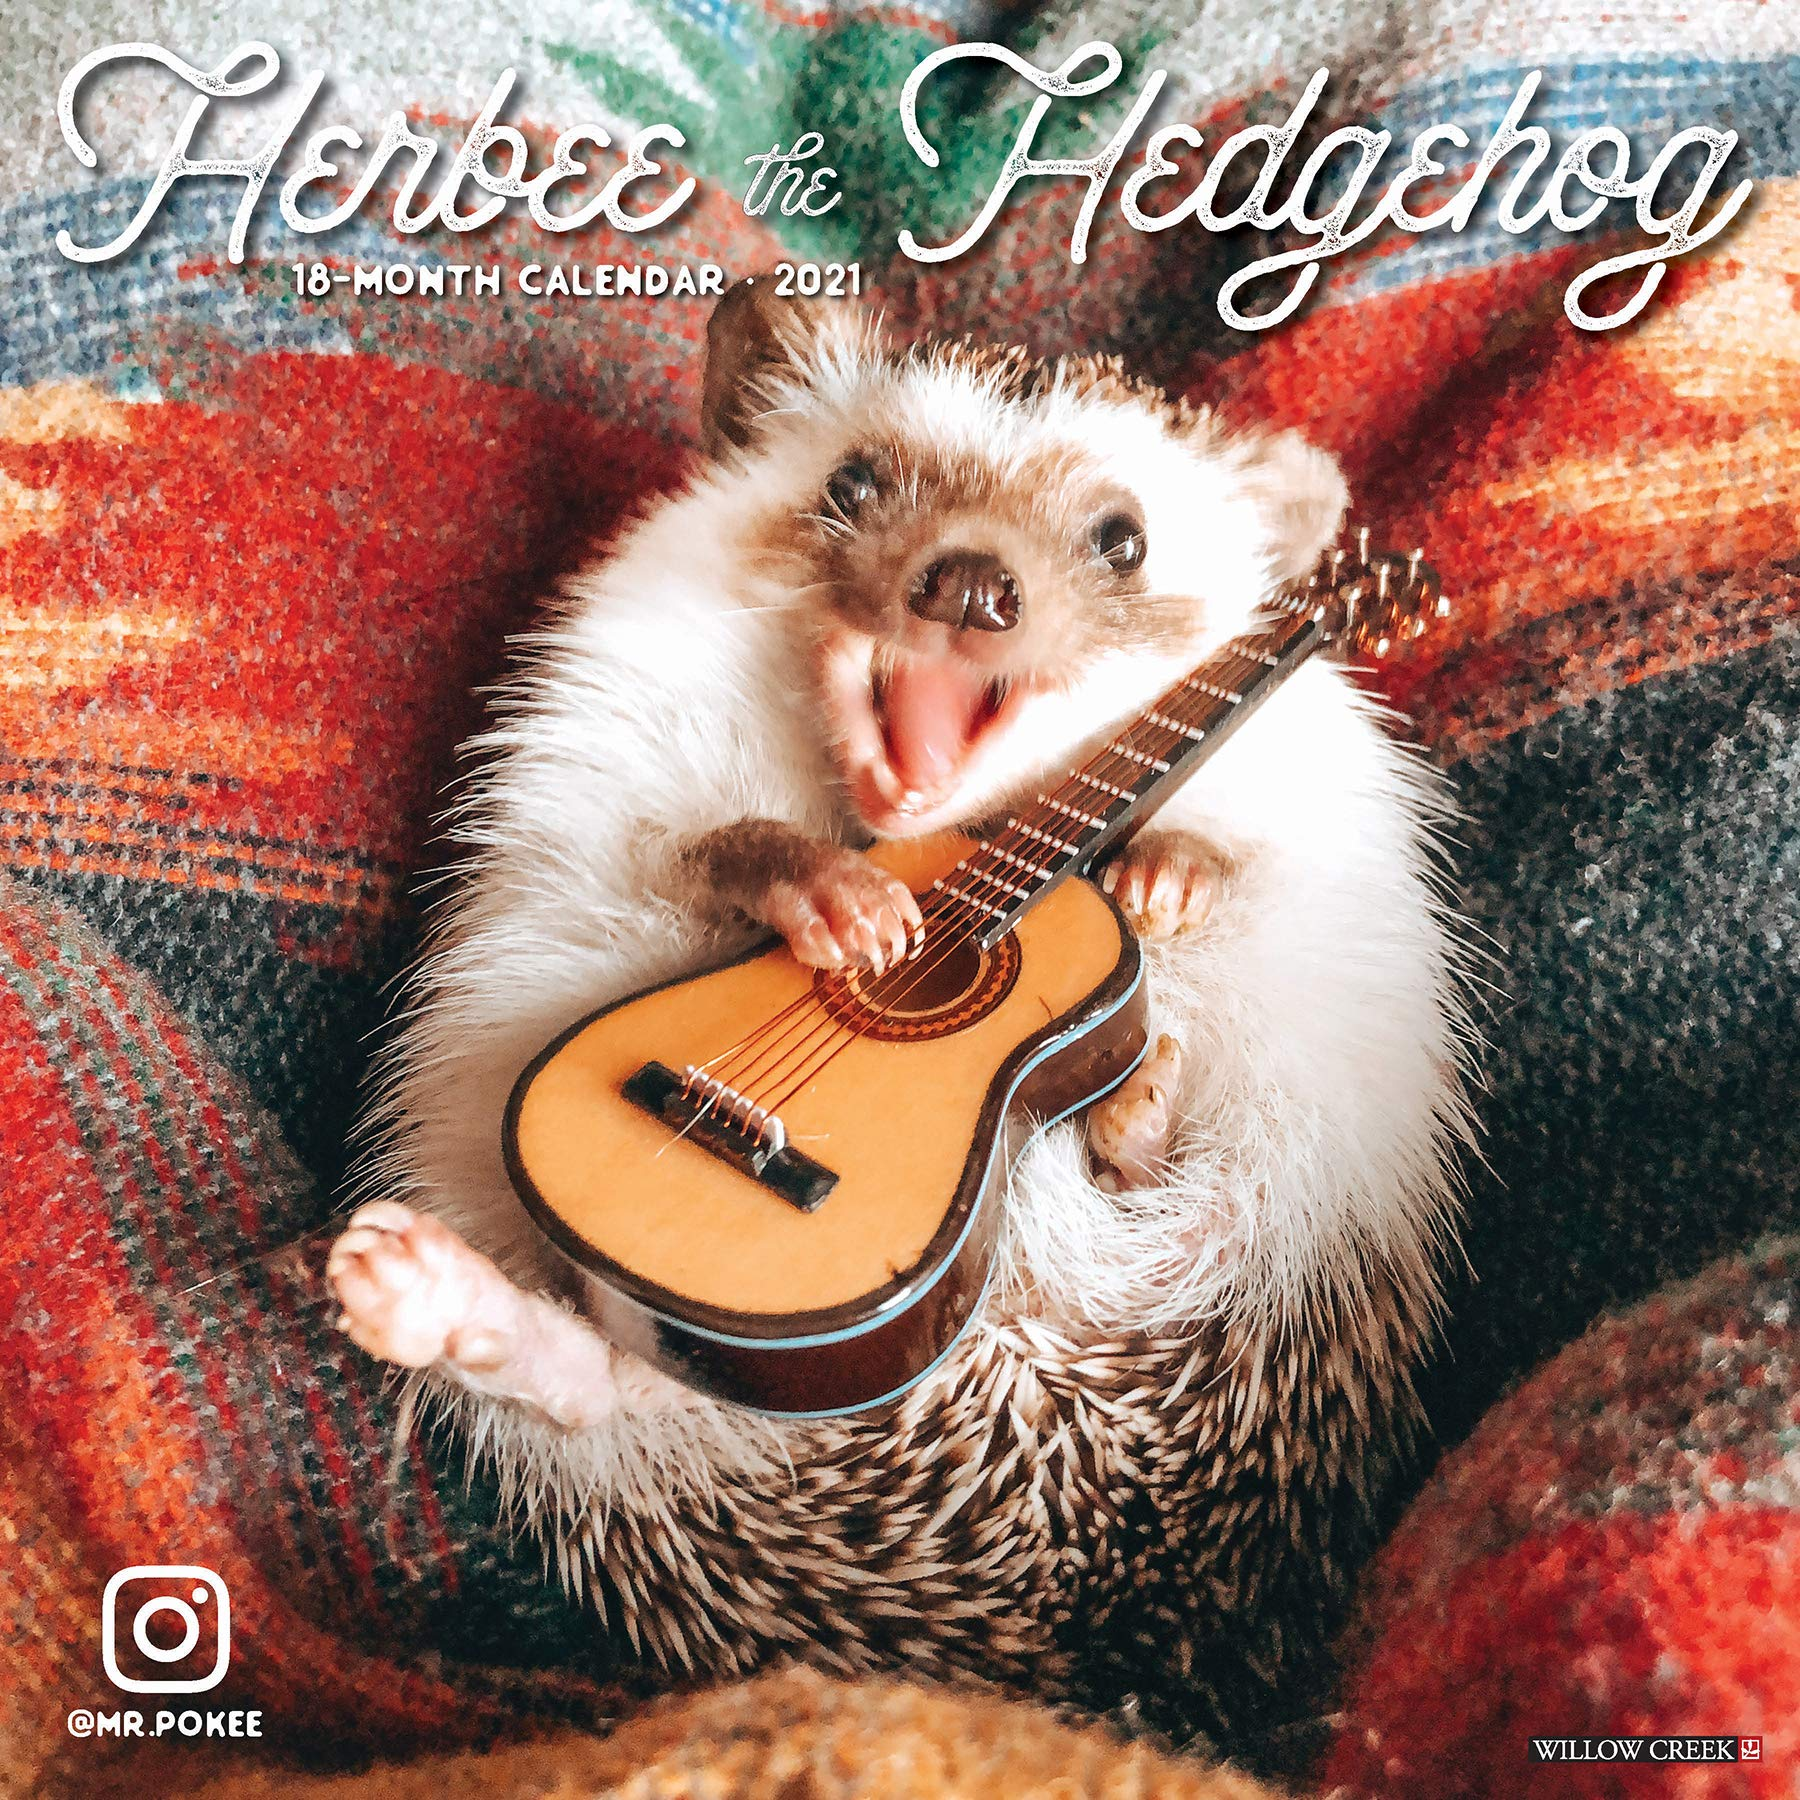 Herbee the Hedgehog 2021 Wall Calendar